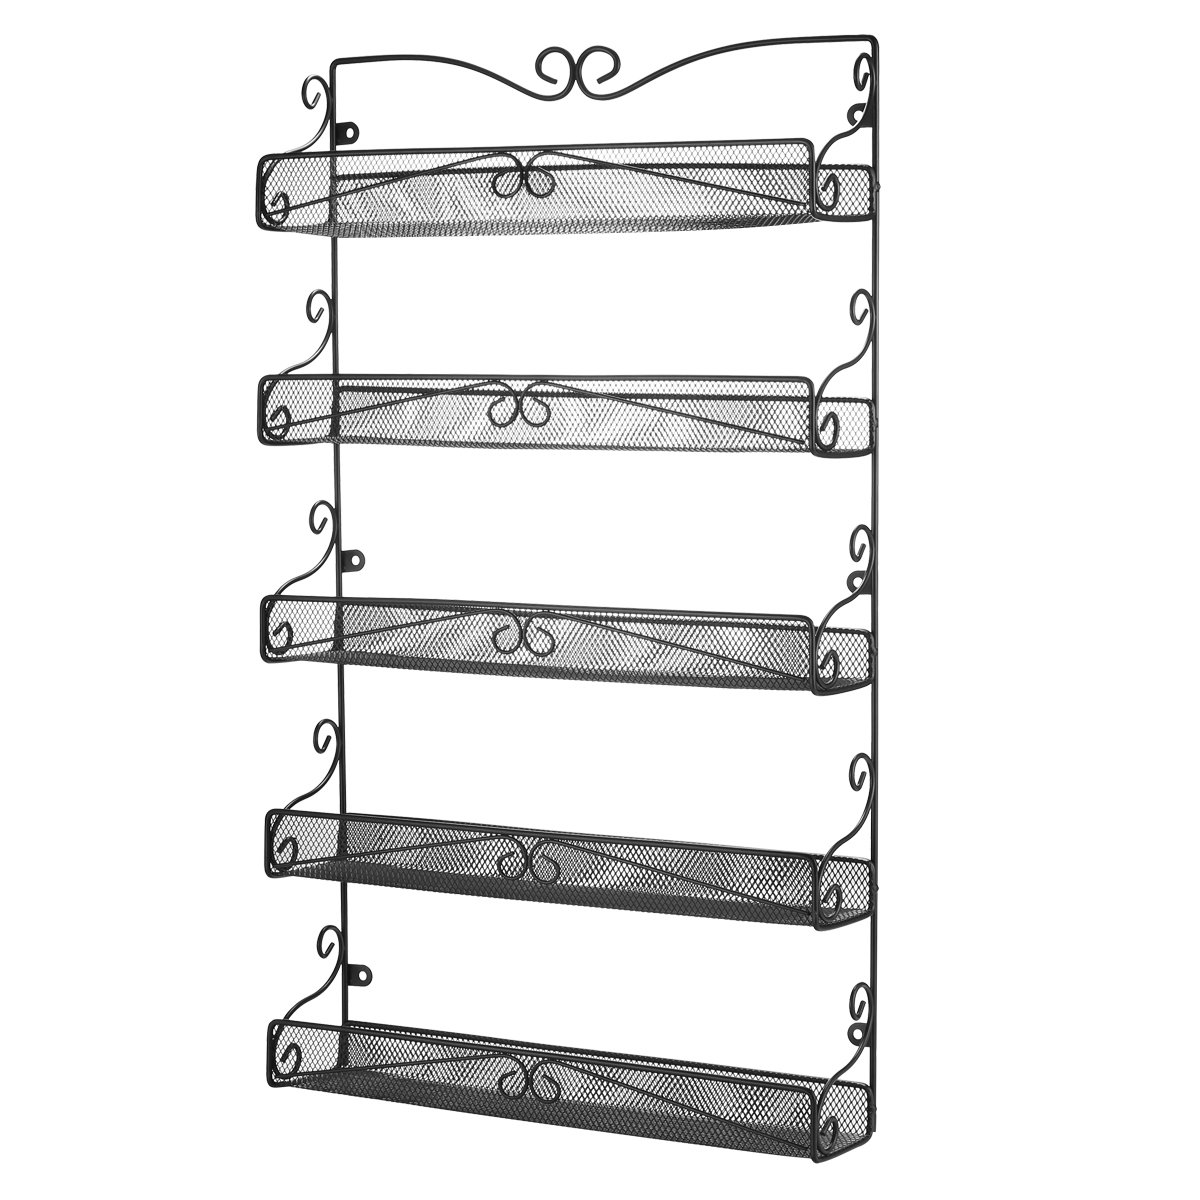 3S Wall Mounted Spice Rack Organizer for Cabinet Pantry Door Kitchen Large Hanging Spice Shelf,5 Tier Black by 3s